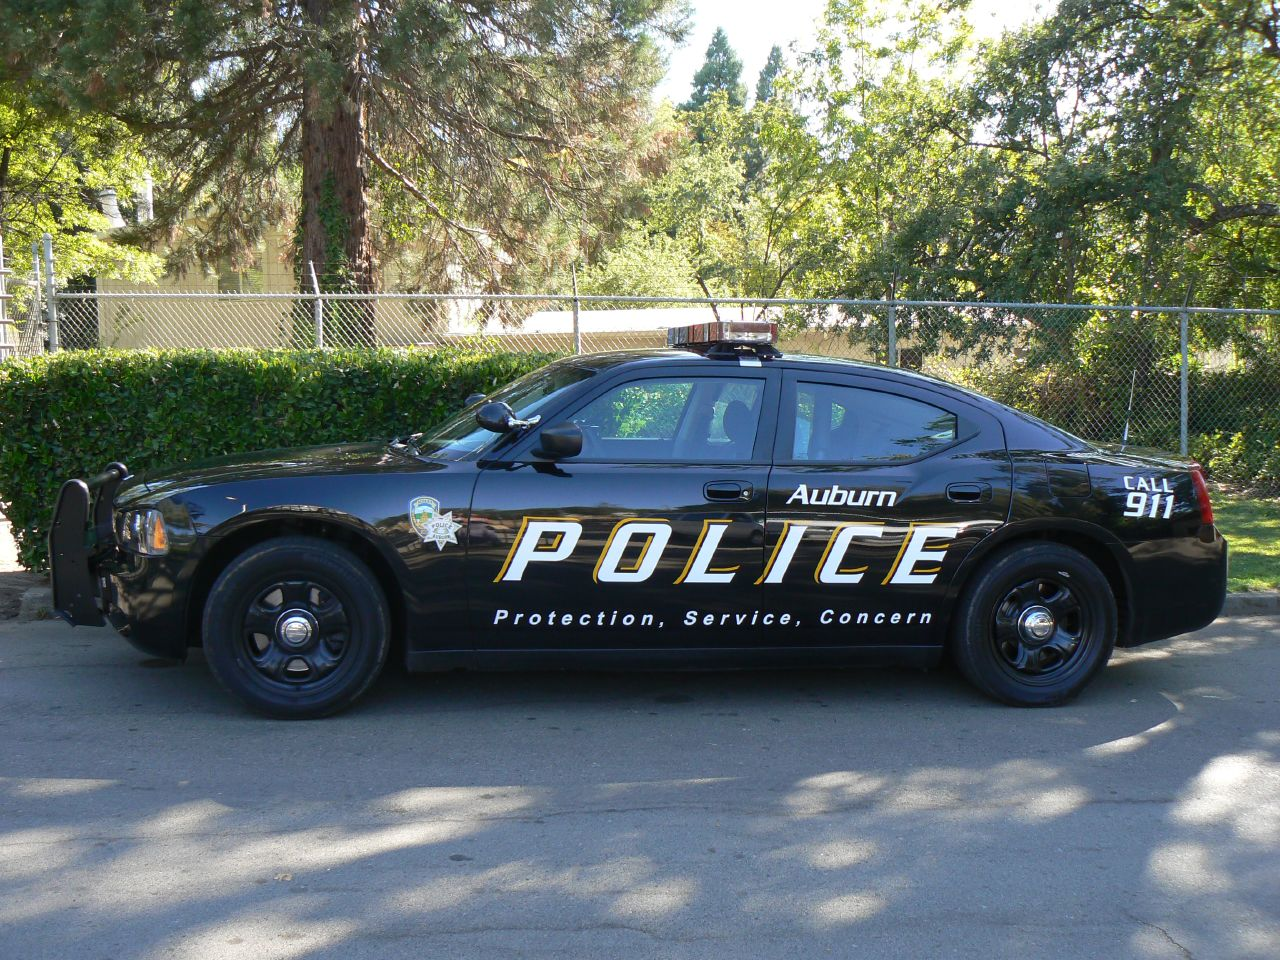 File:Dodge Charger Police Car.jpg  Wikimedia Commons